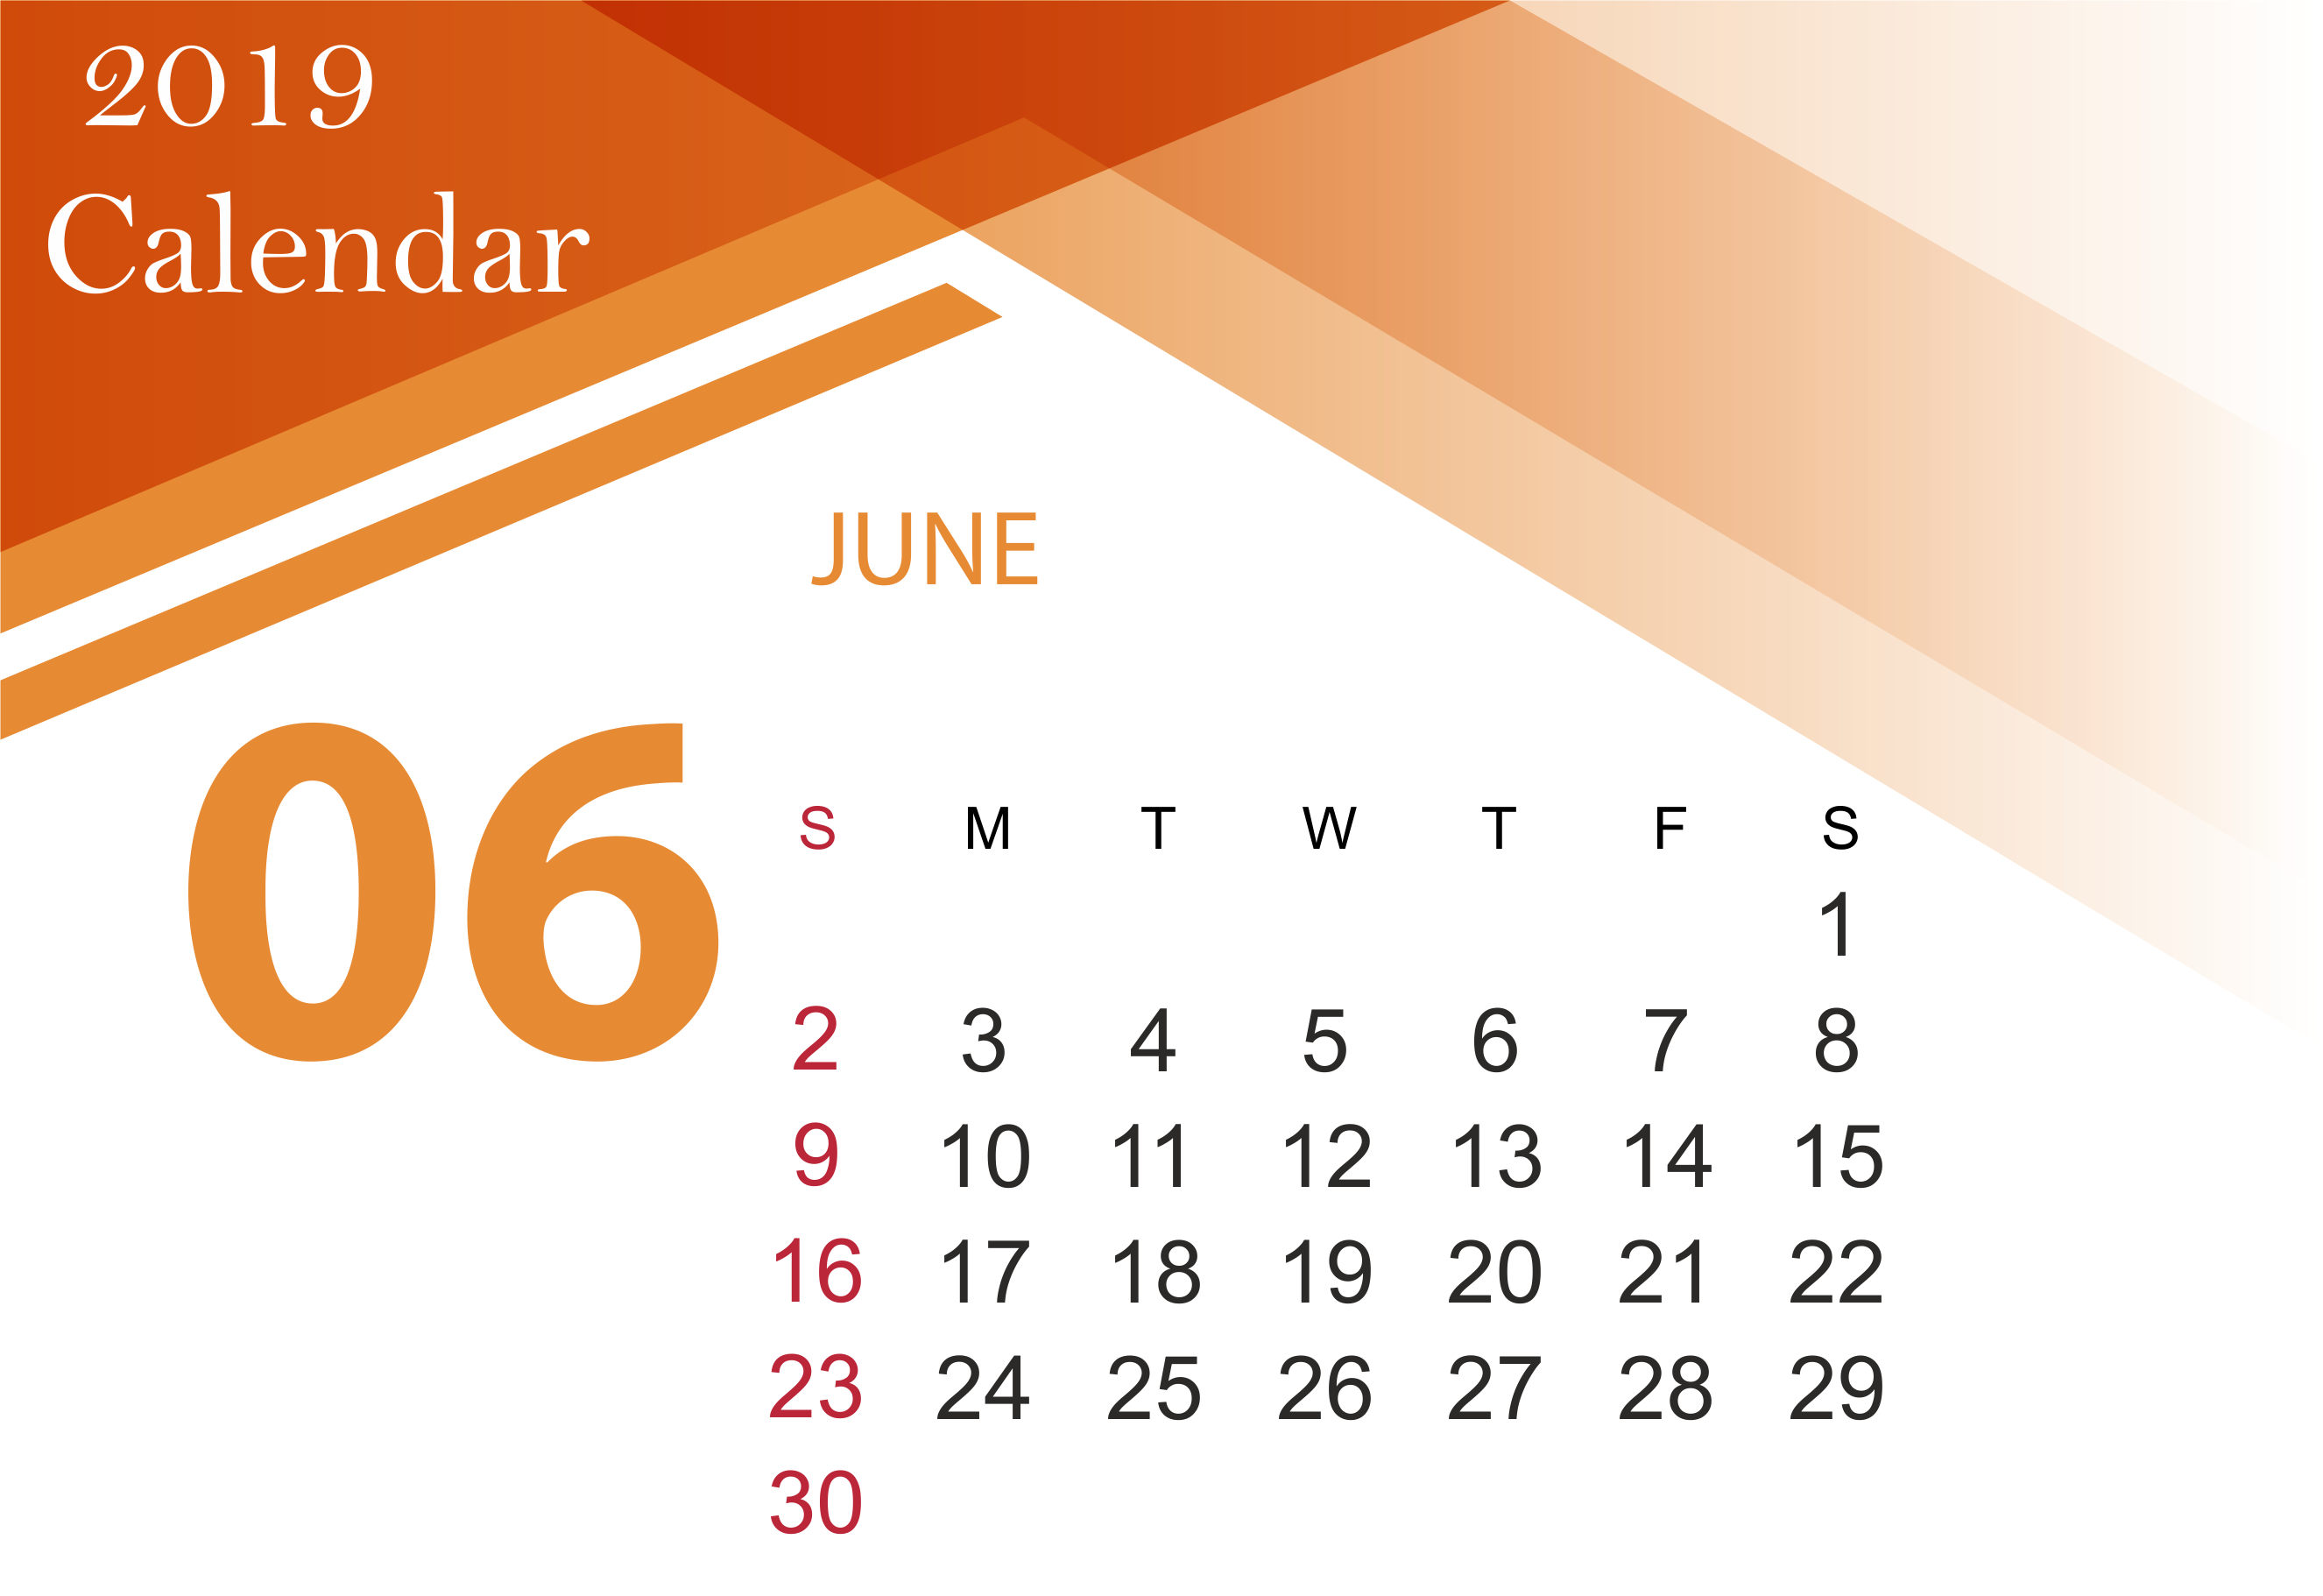 June 2019 Calendar Printable Template with Holidays 2652x1822